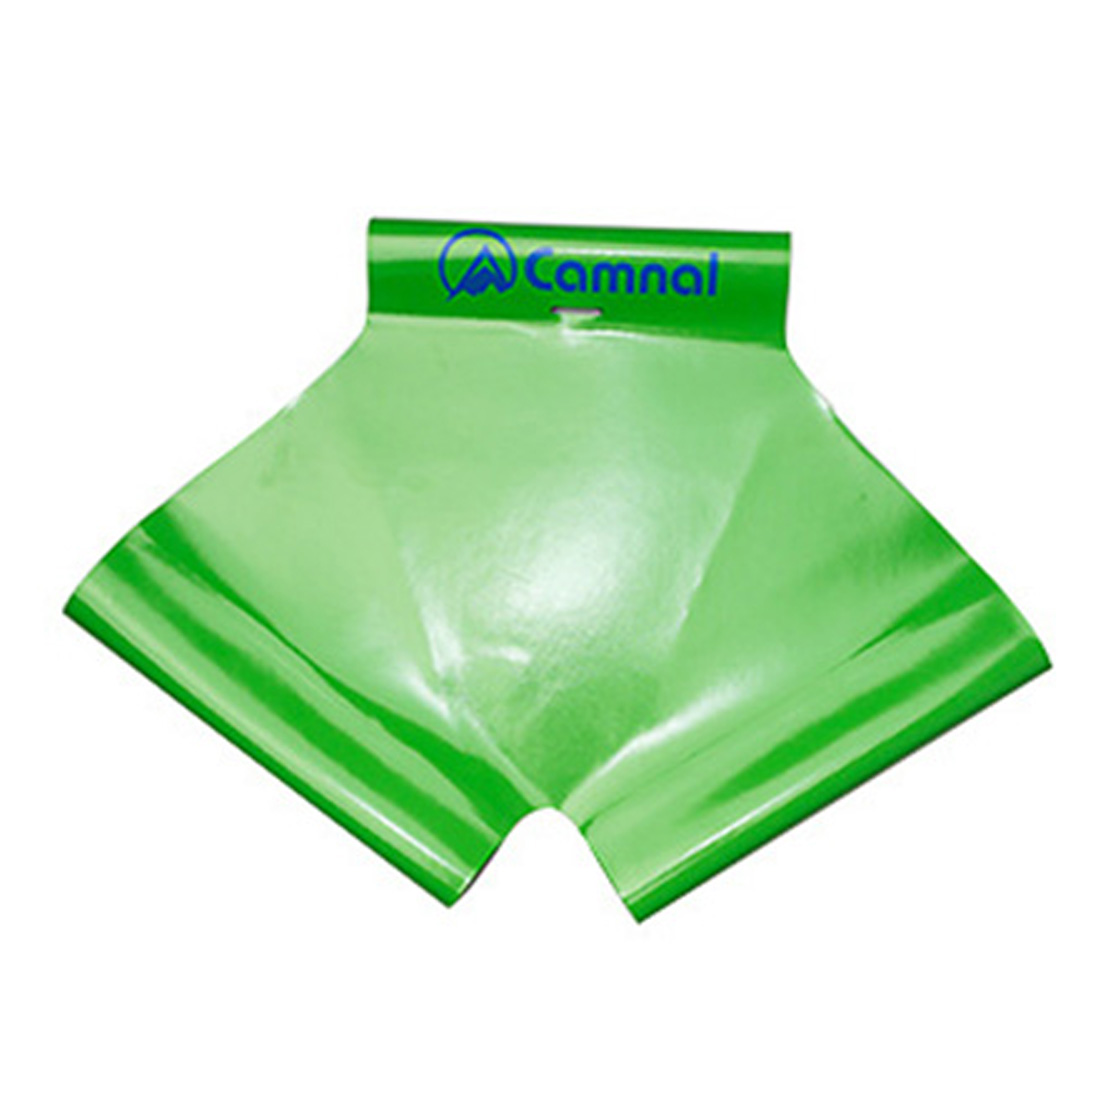 Covers Butt Seat Harness Wear-resisting Rescue Rappelling Swimming Jumping